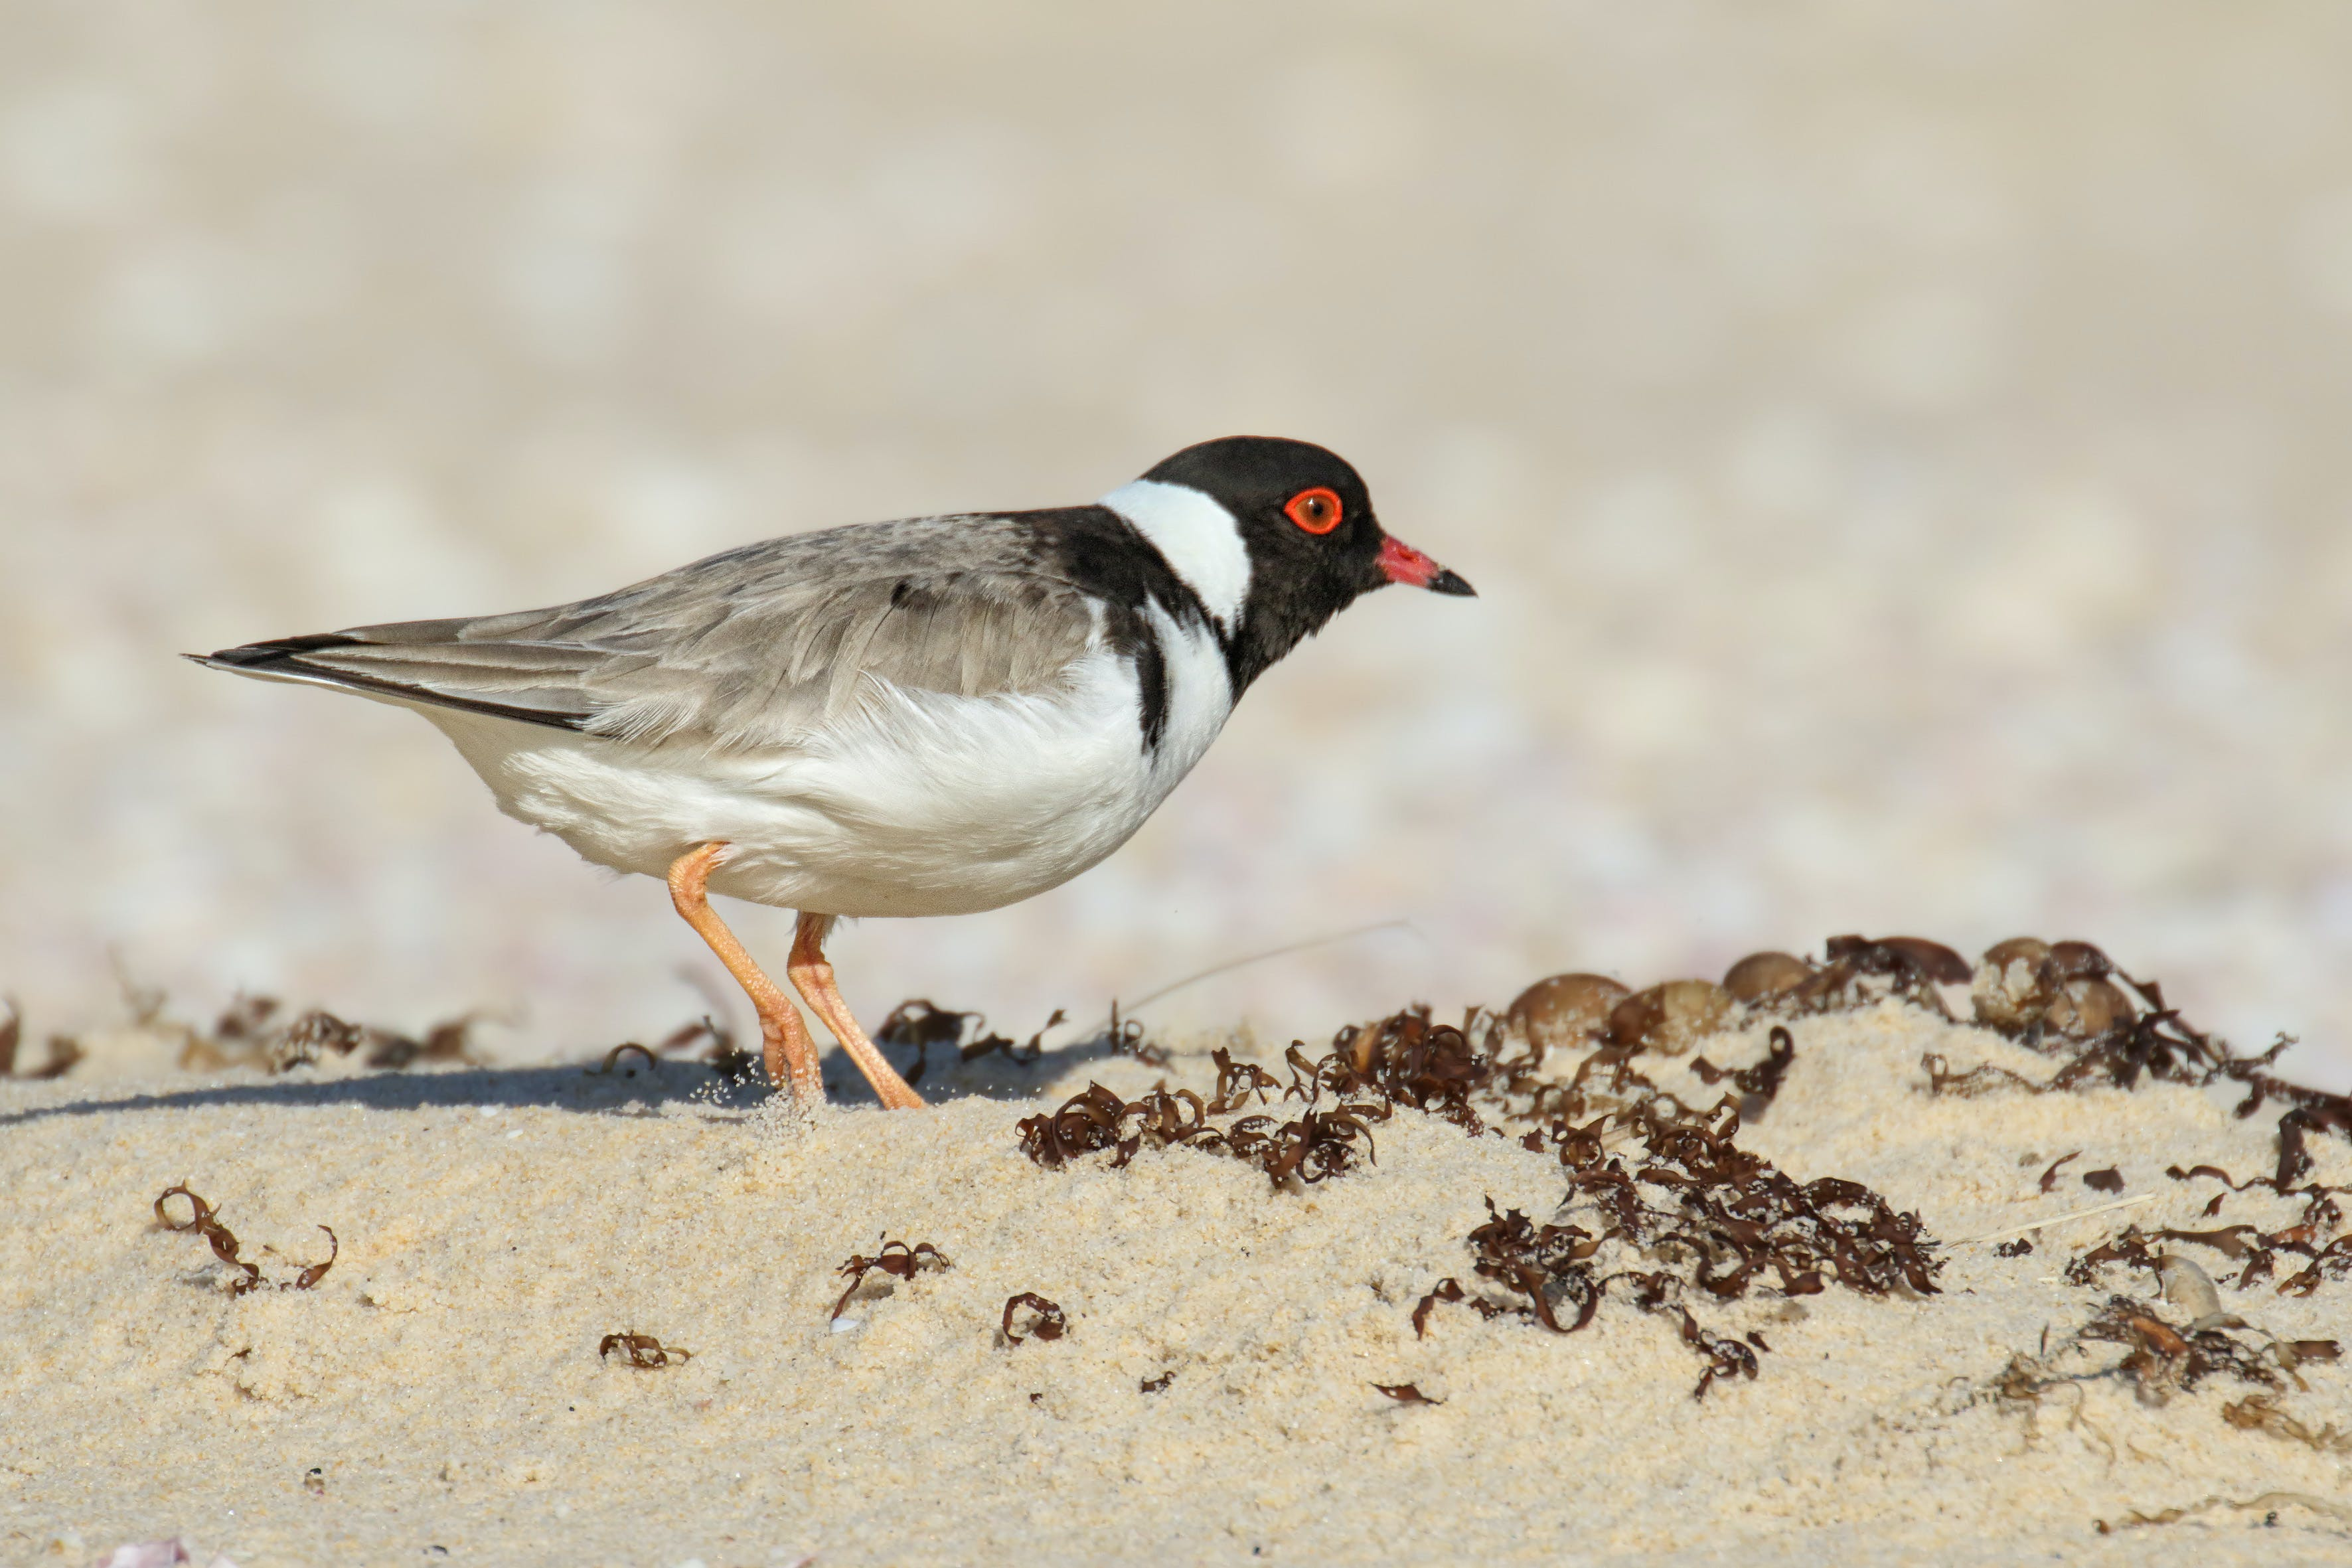 Hooded plover adult. Photo: L Berzins.